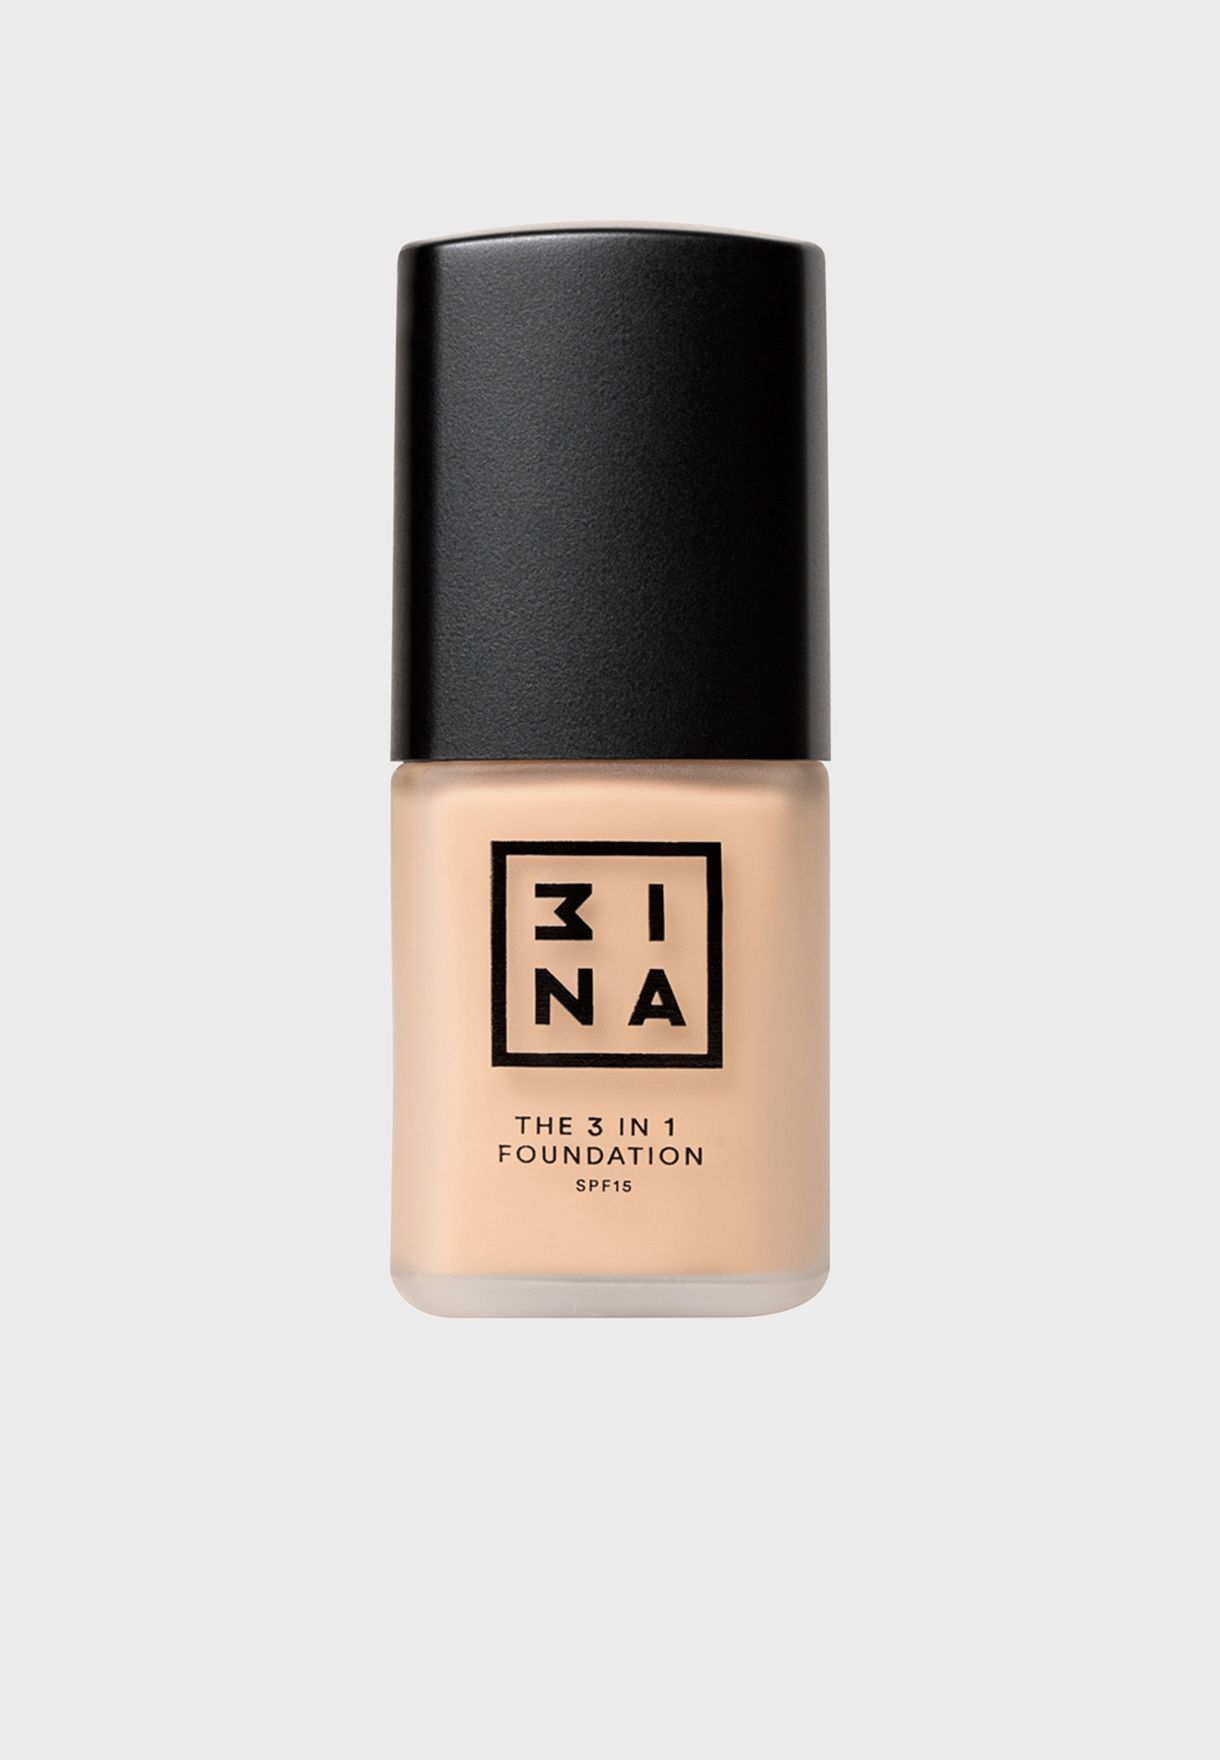 The 3-in-1 Foundation 212